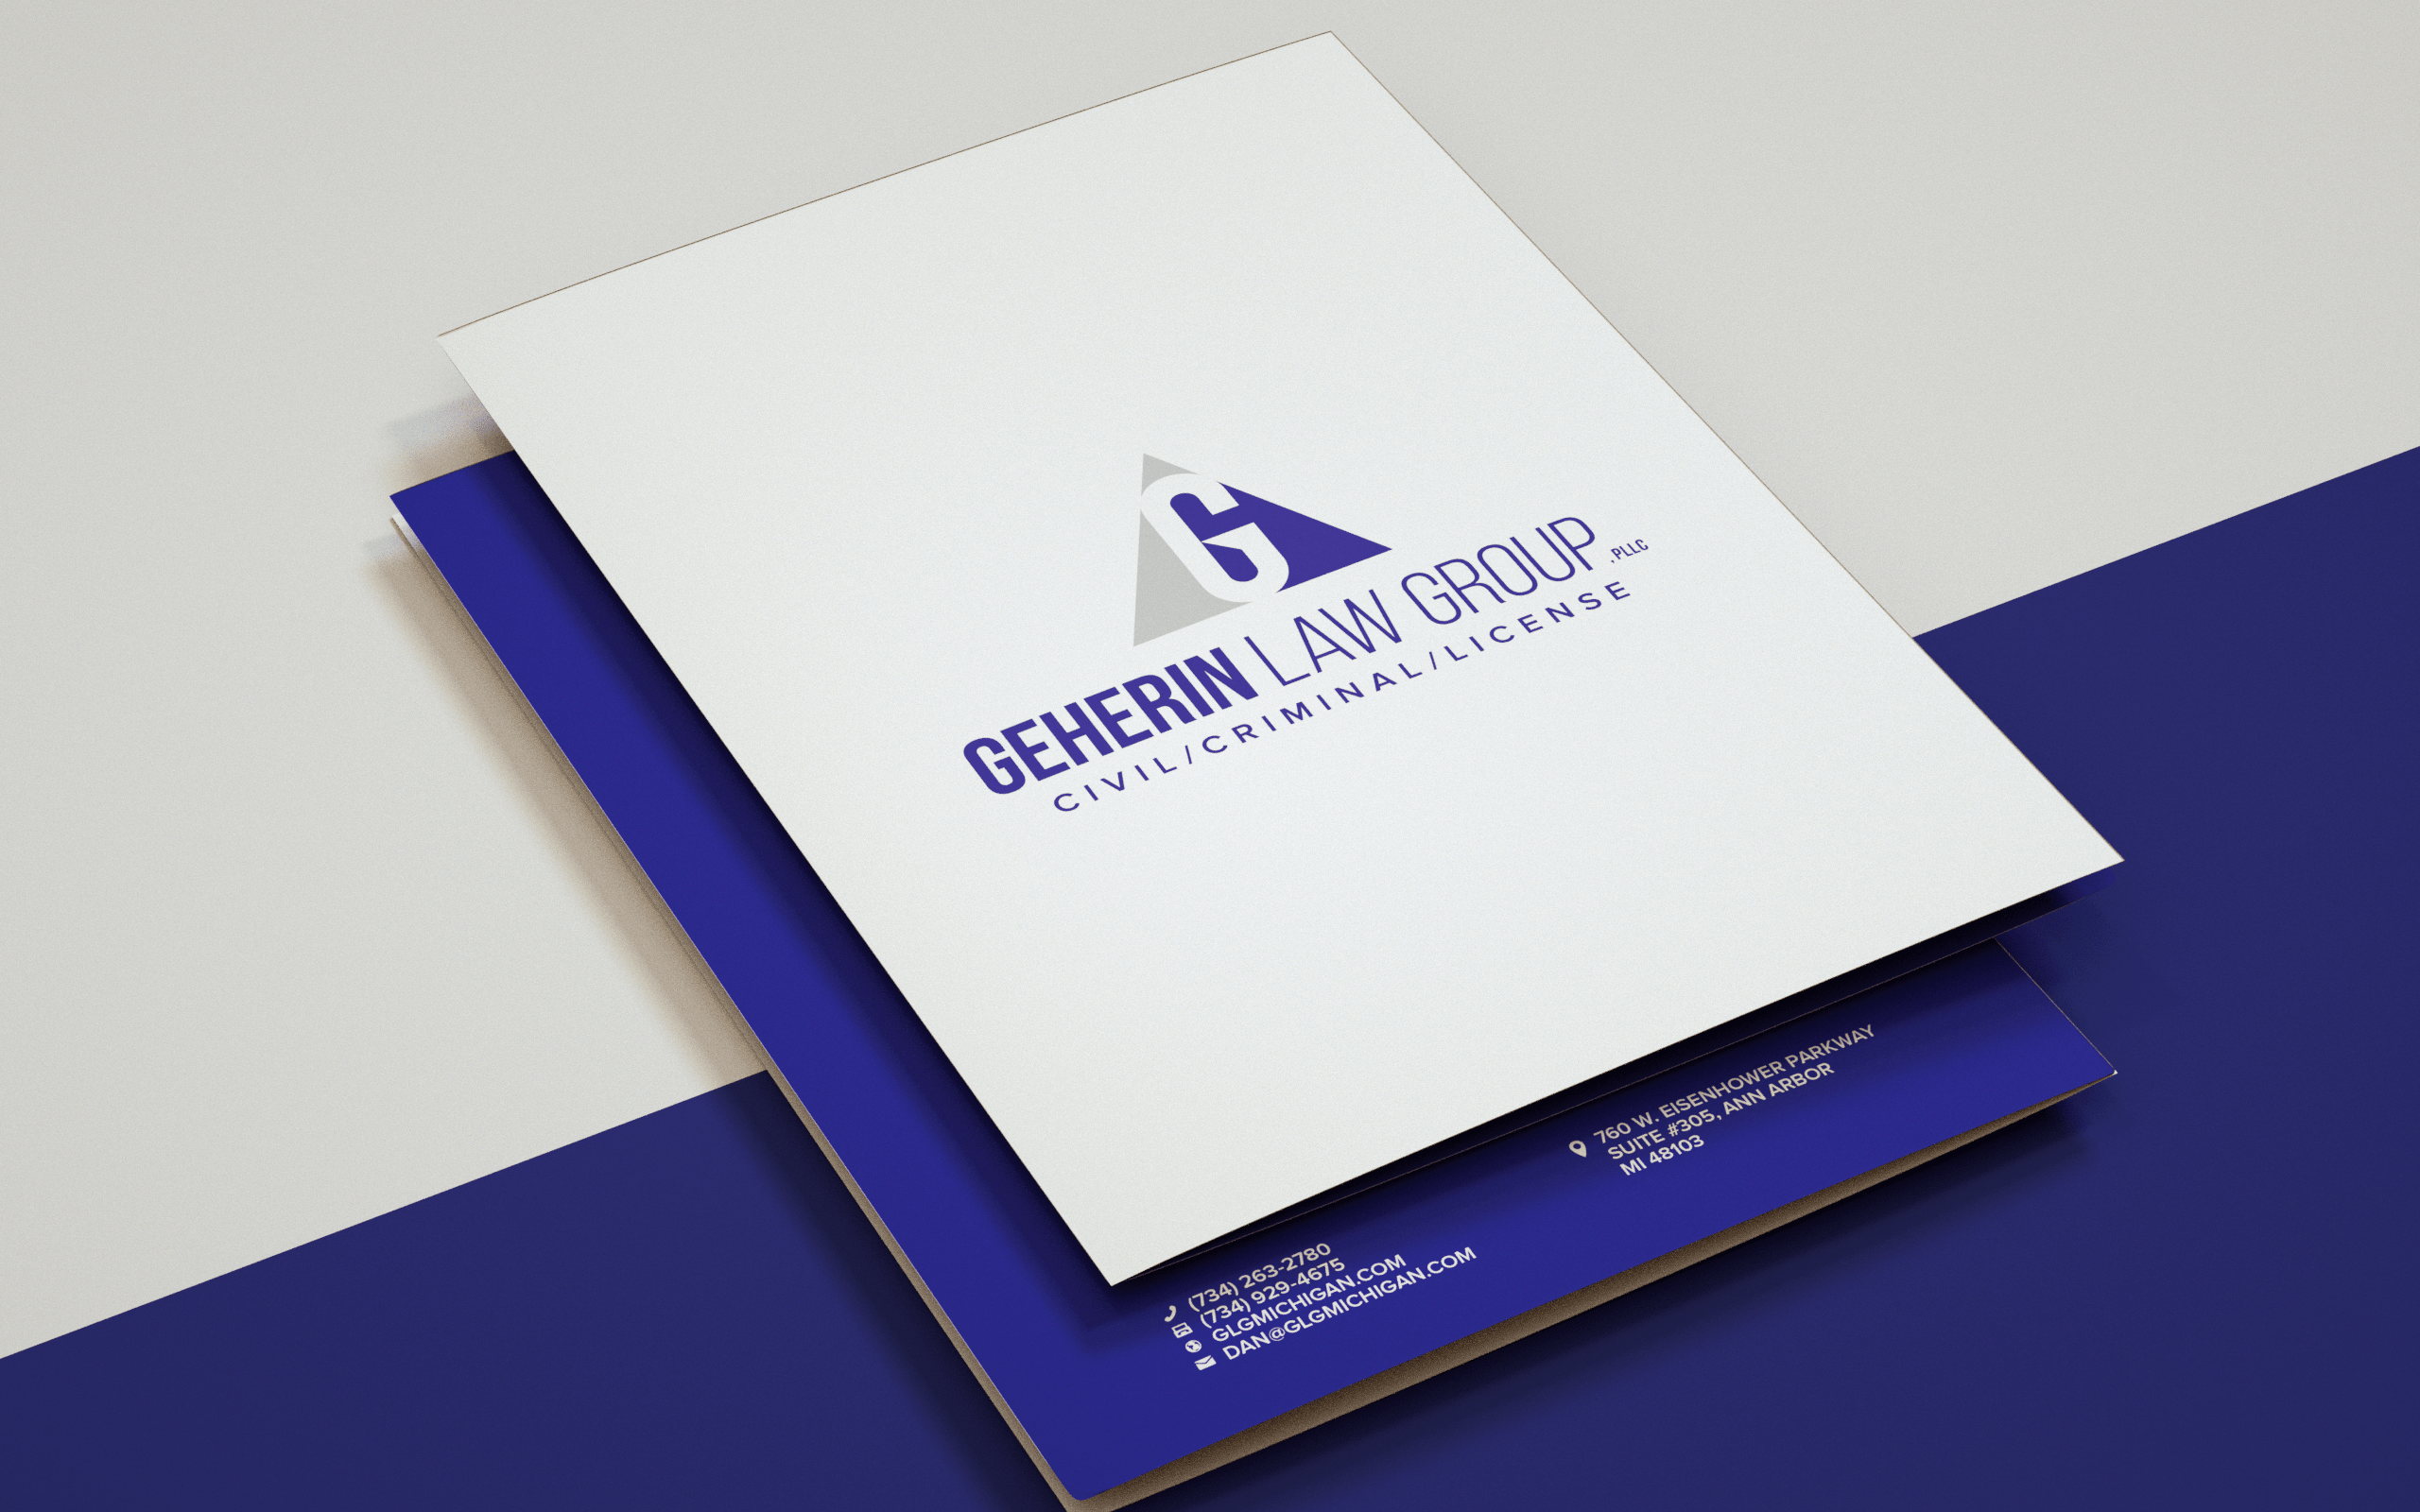 GEHERIN LAW GROUP FOLDER